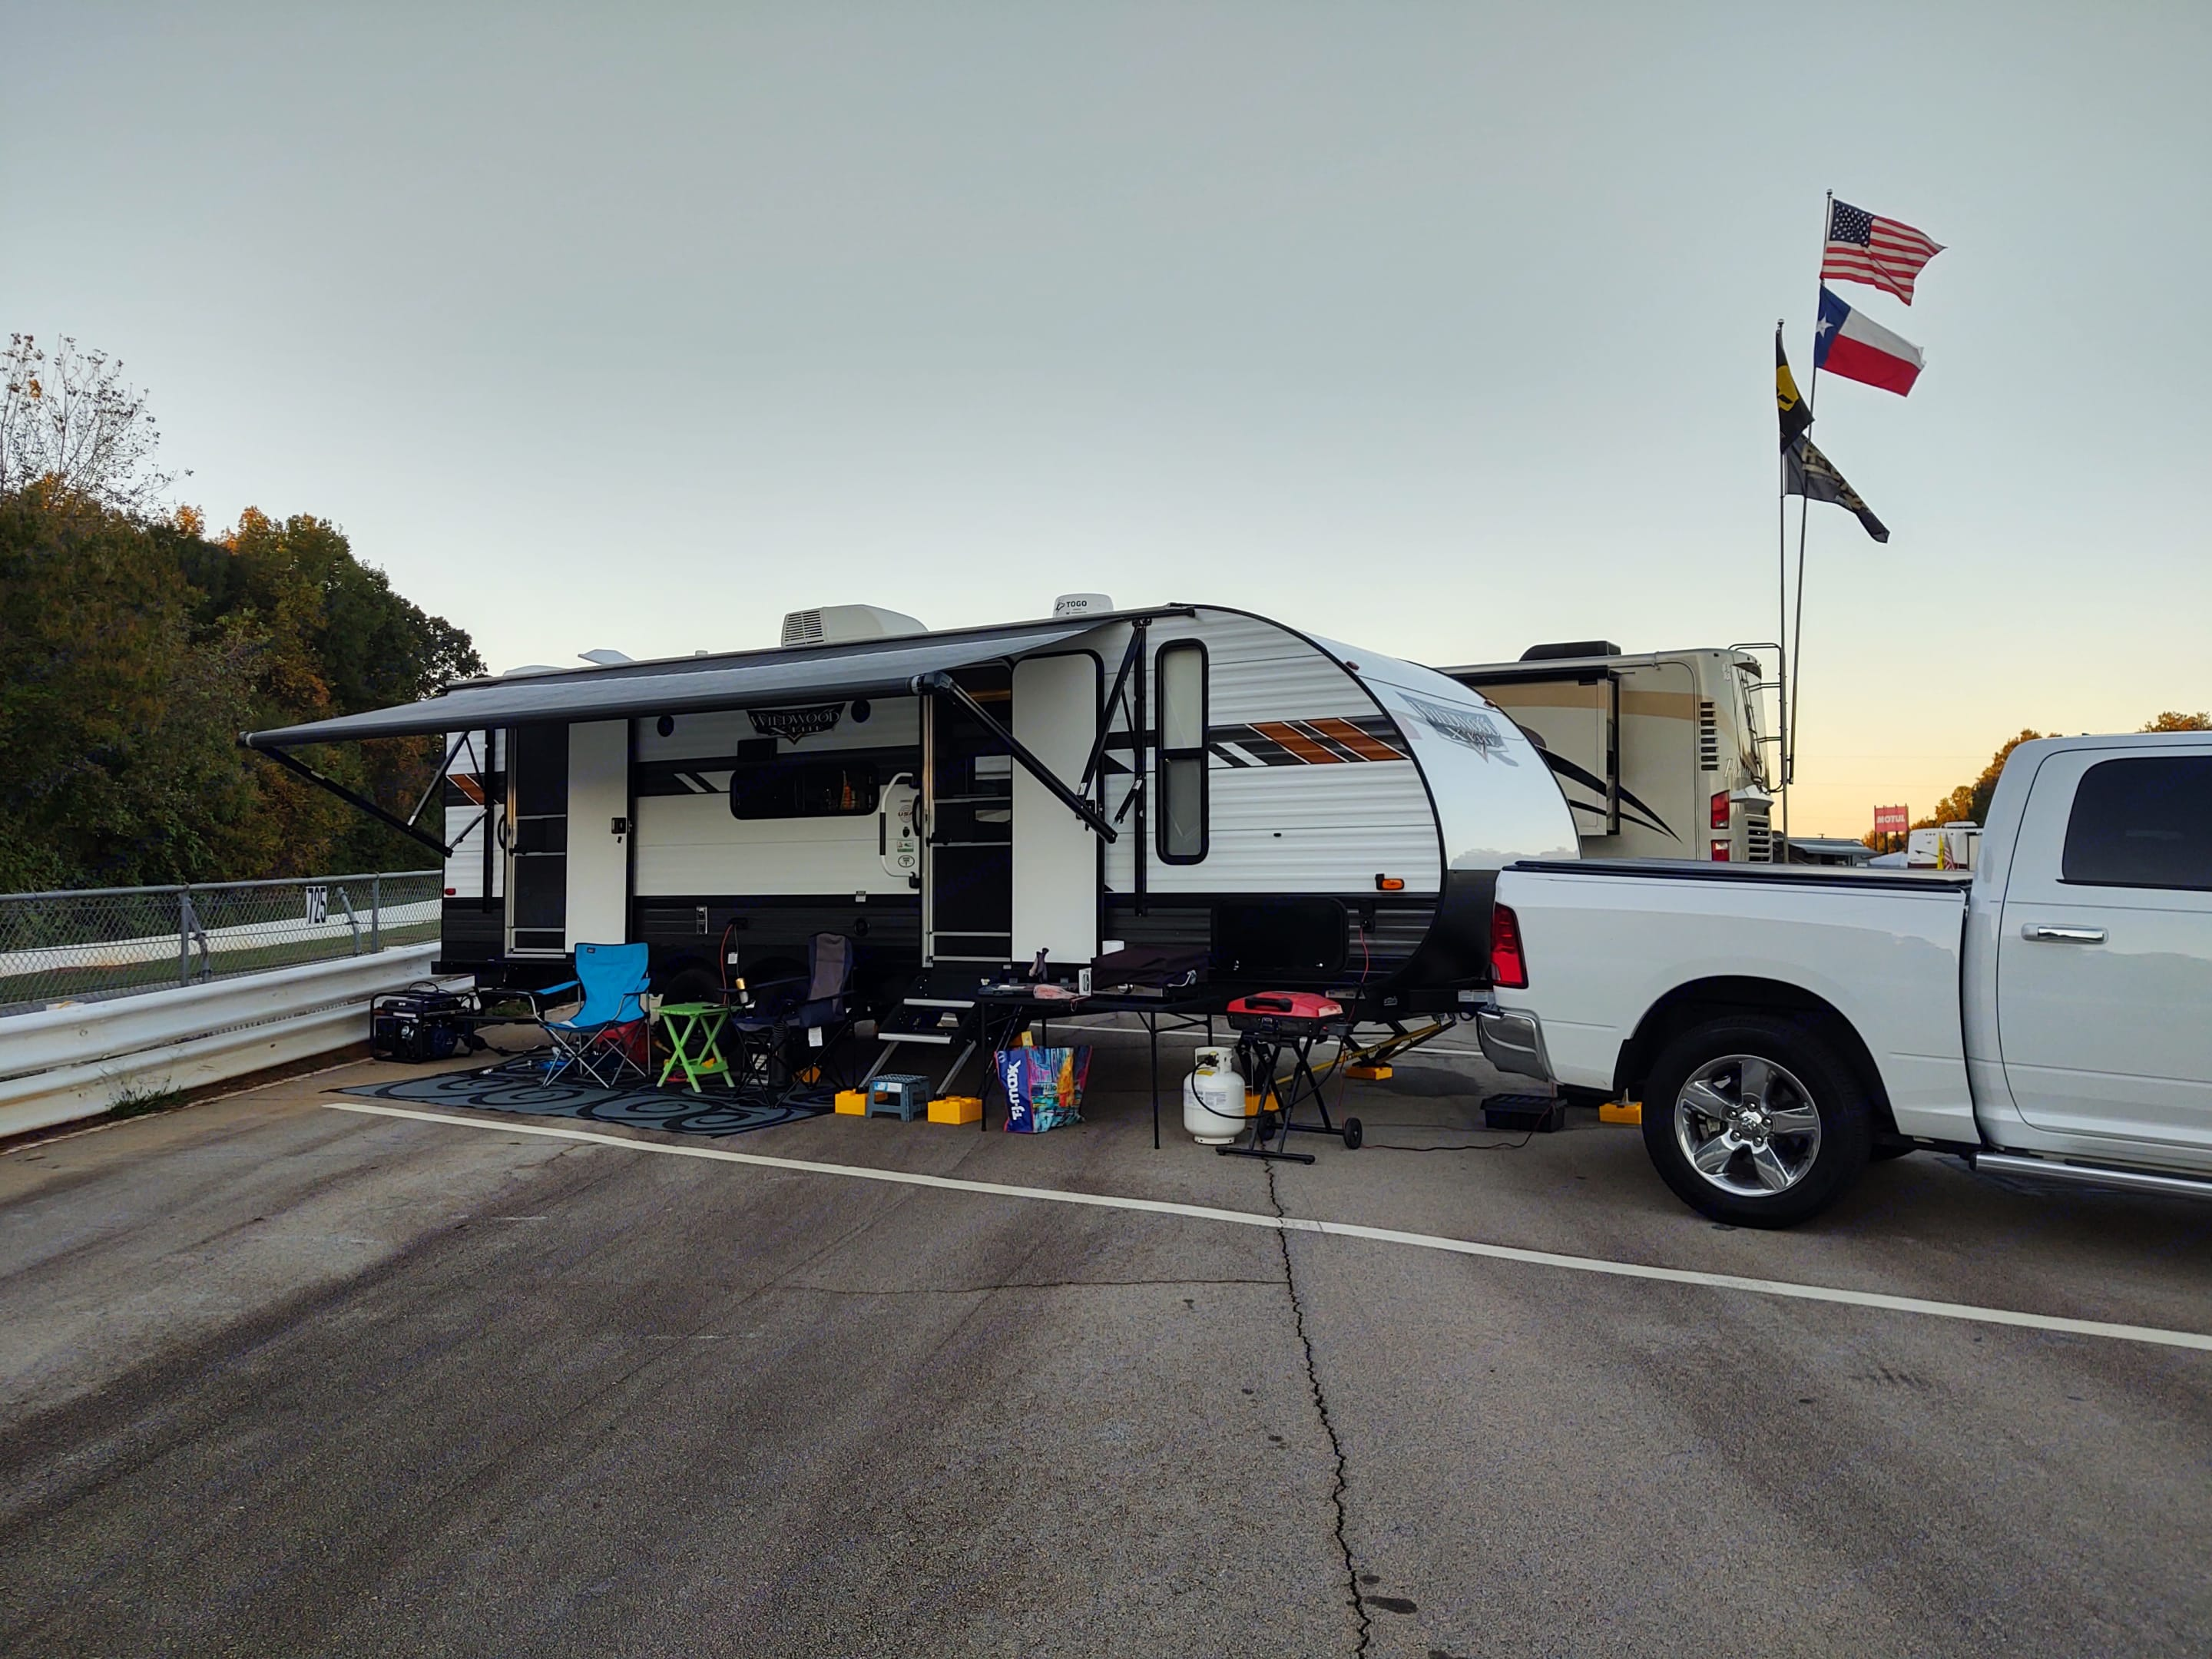 Boondocking with a generator at Road Atlanta for Petit Le Mans. Forest River Wildwood X-Lite 240BHXL 2020